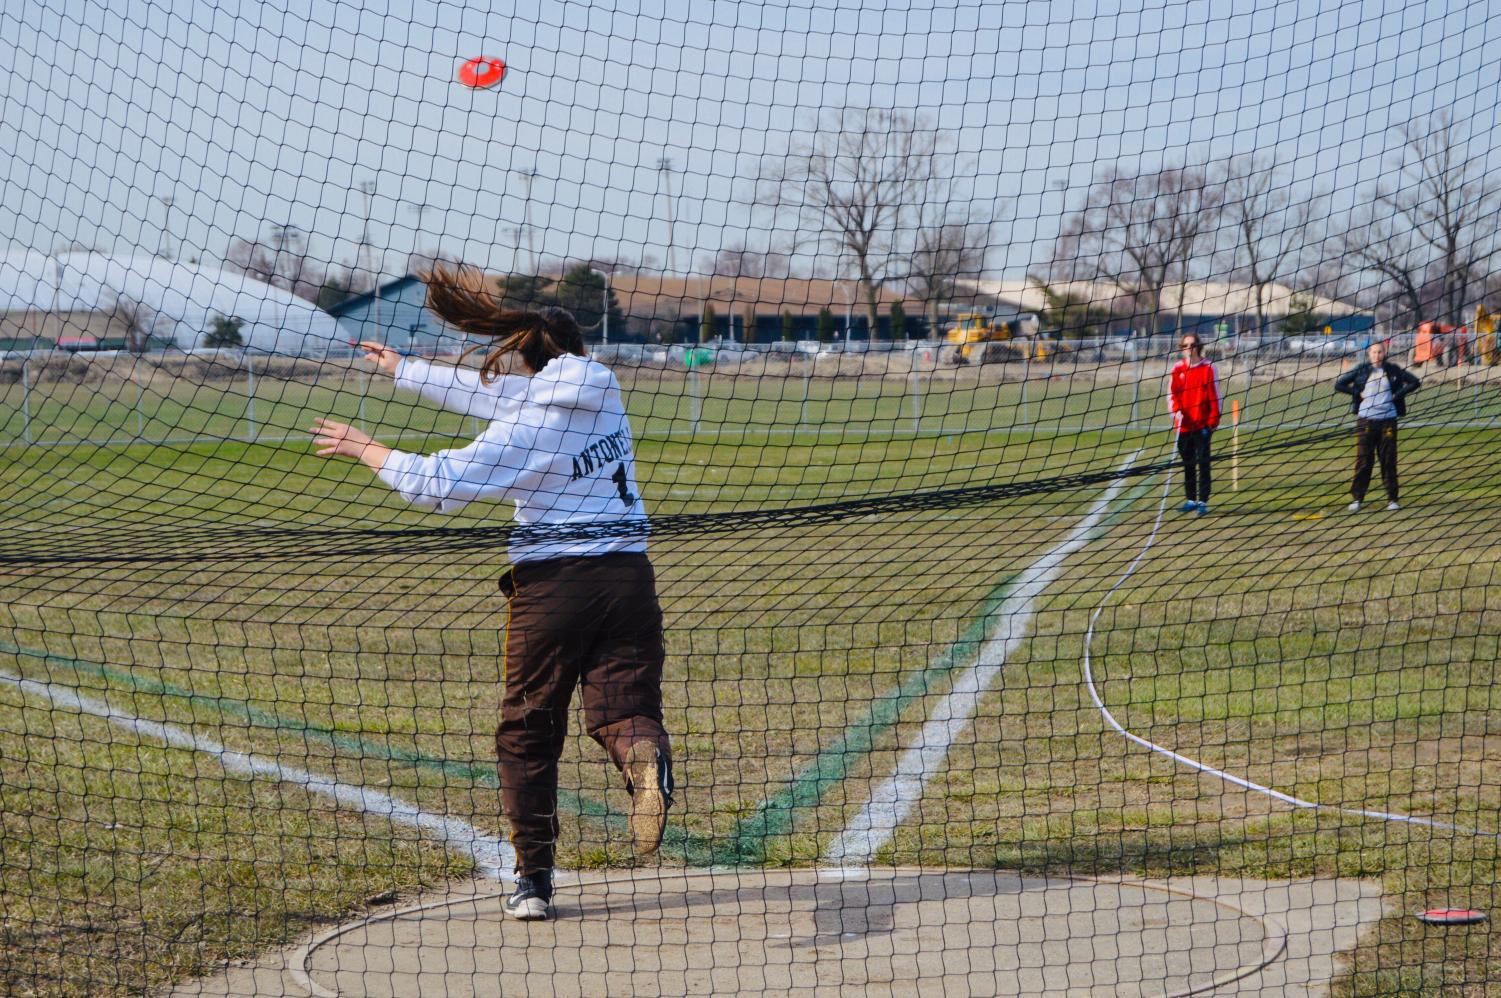 Grace throwing discus at the Royal Oak relays in May of 2018.